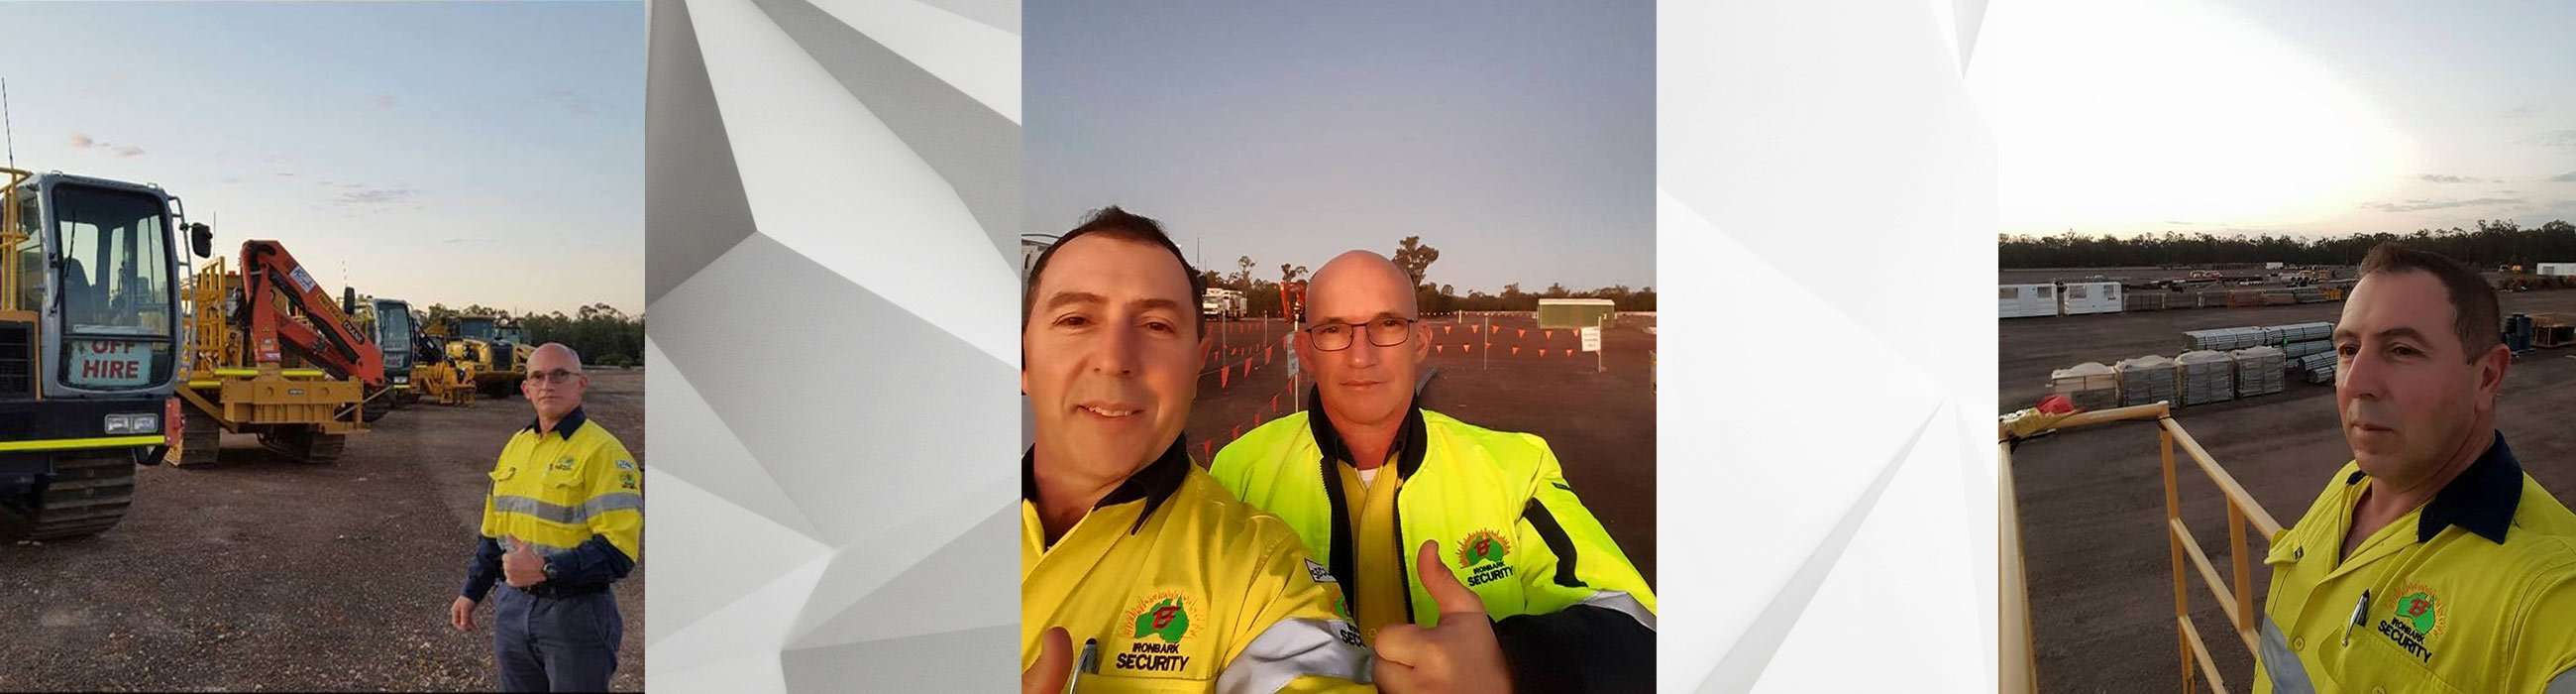 Security Patrol Services in Toowoomba